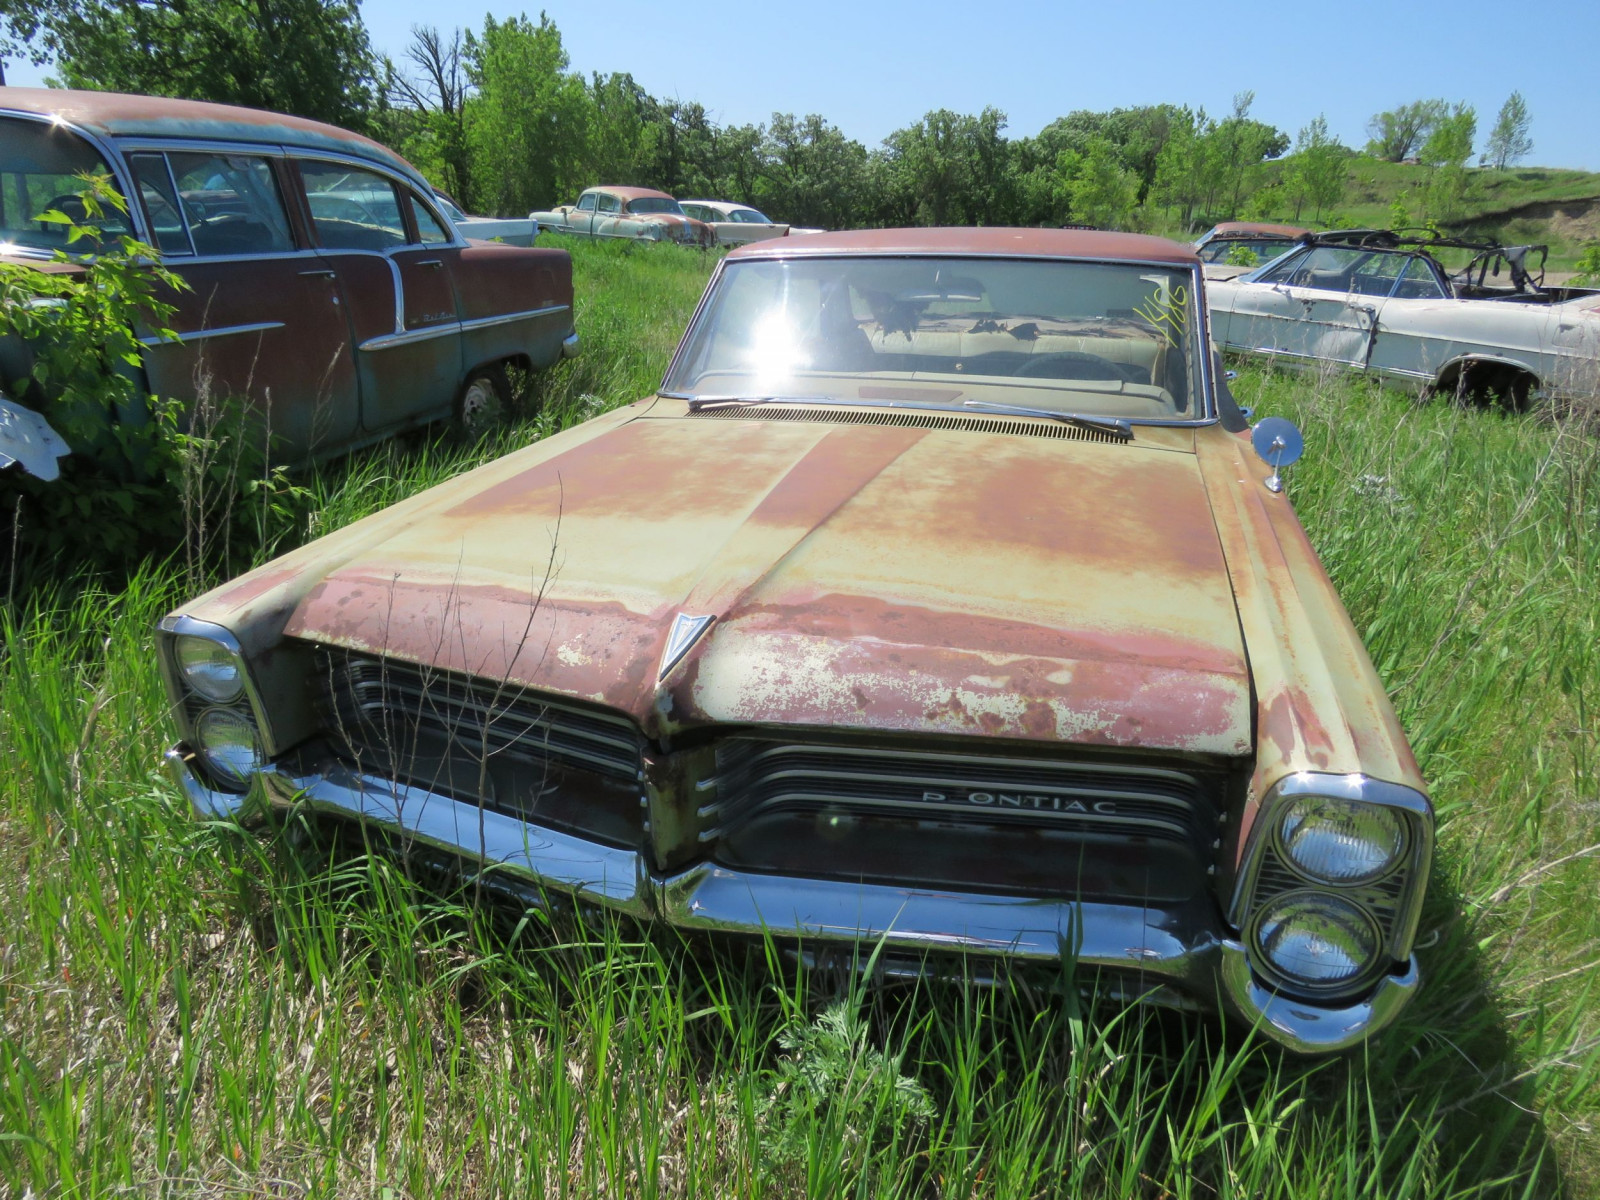 1964 Pontiac Catalina 4dr Sedan for Project or parts - Image 2